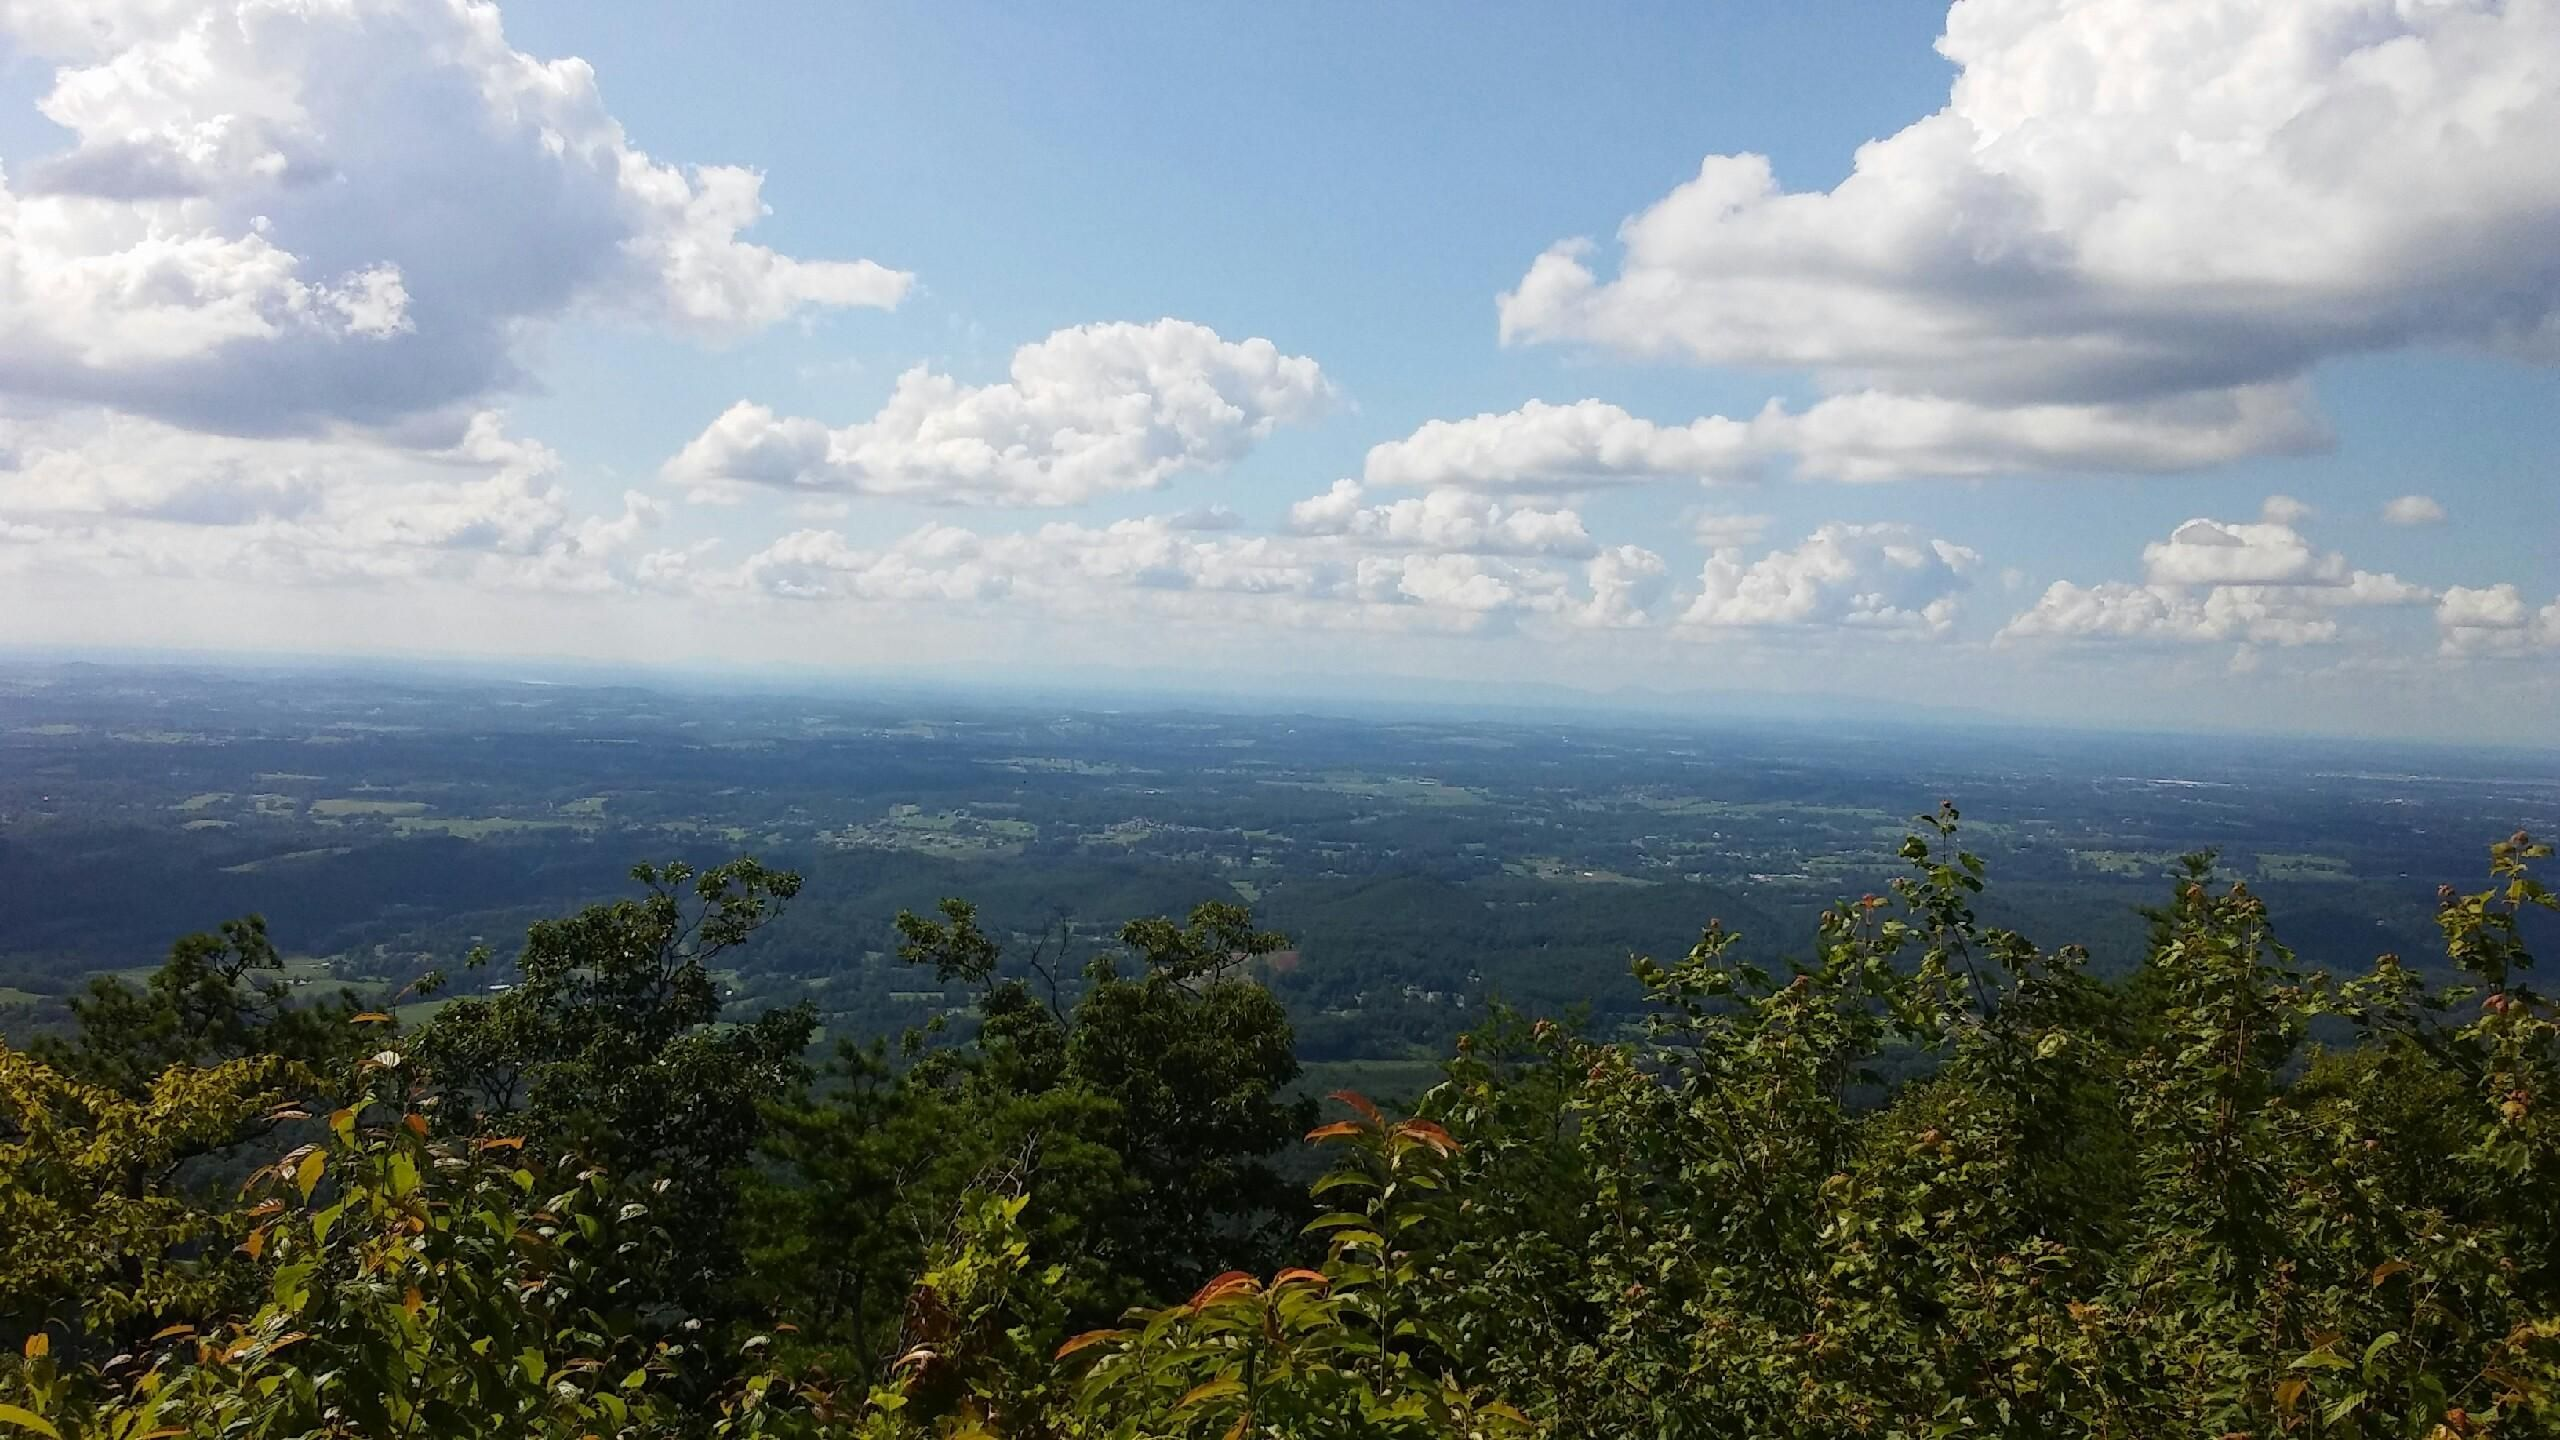 View of East TN Valley